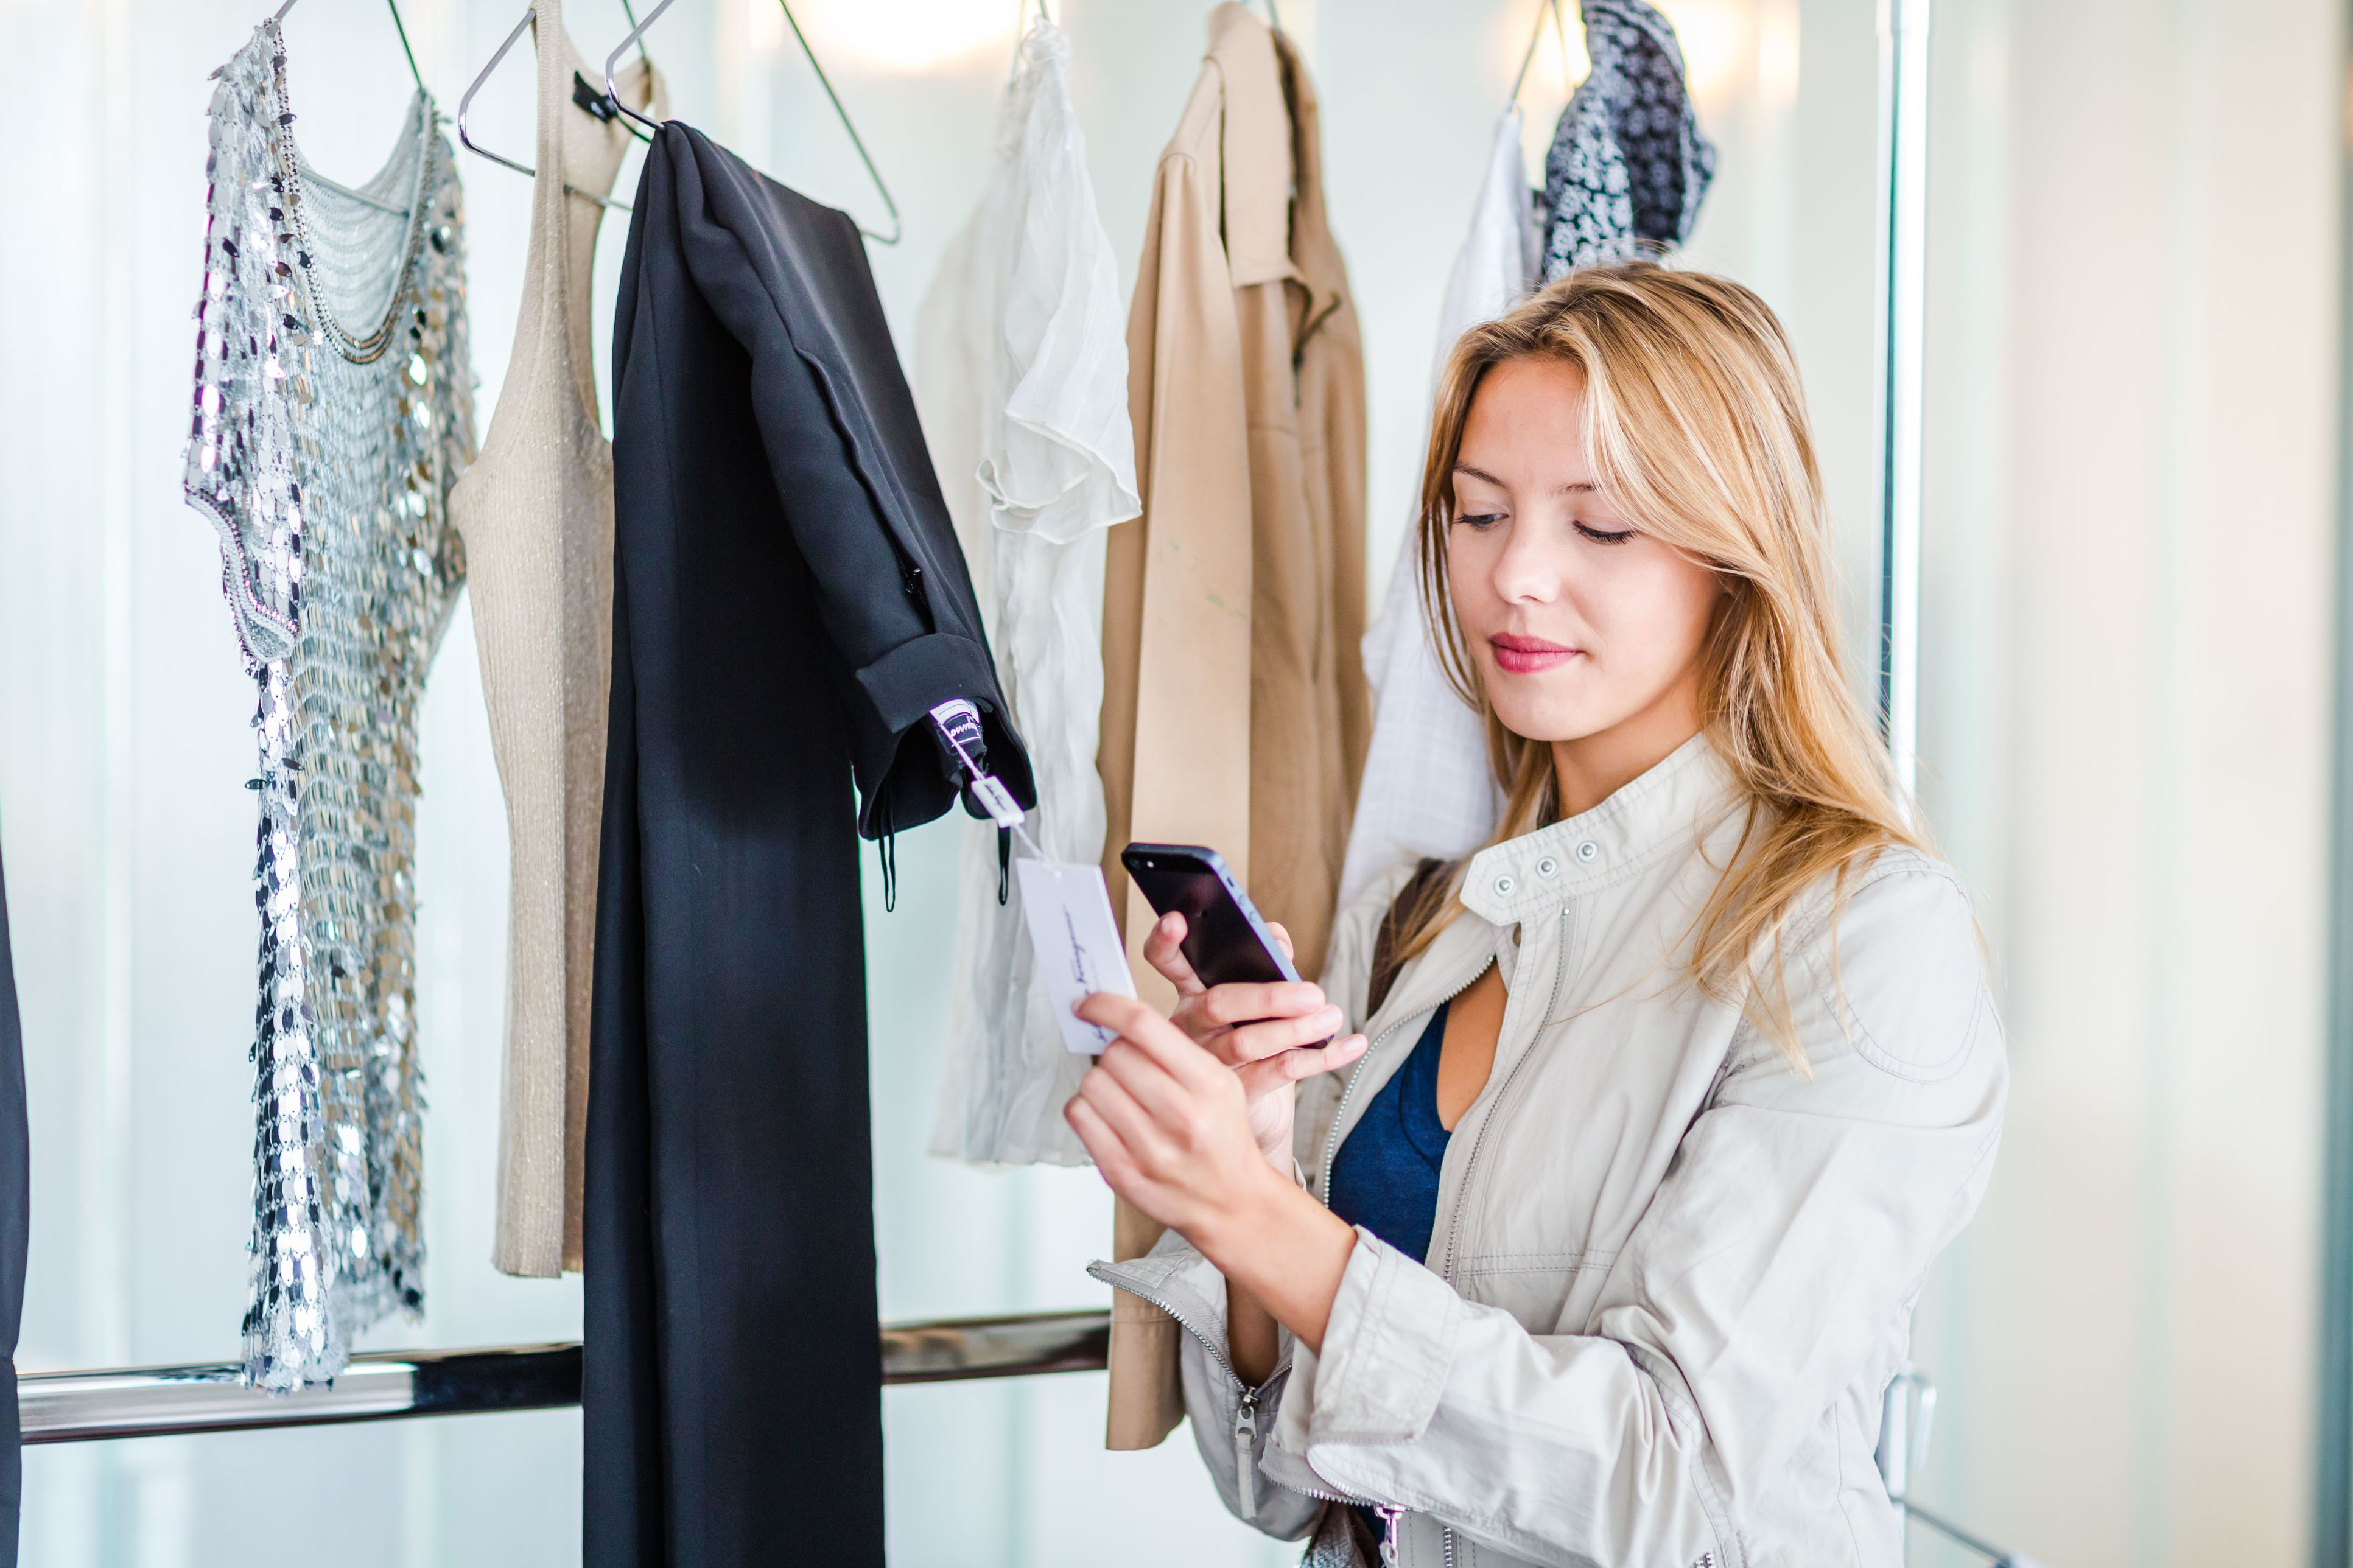 8 Best Local Selling Apps to Sell Your Stuff Quick